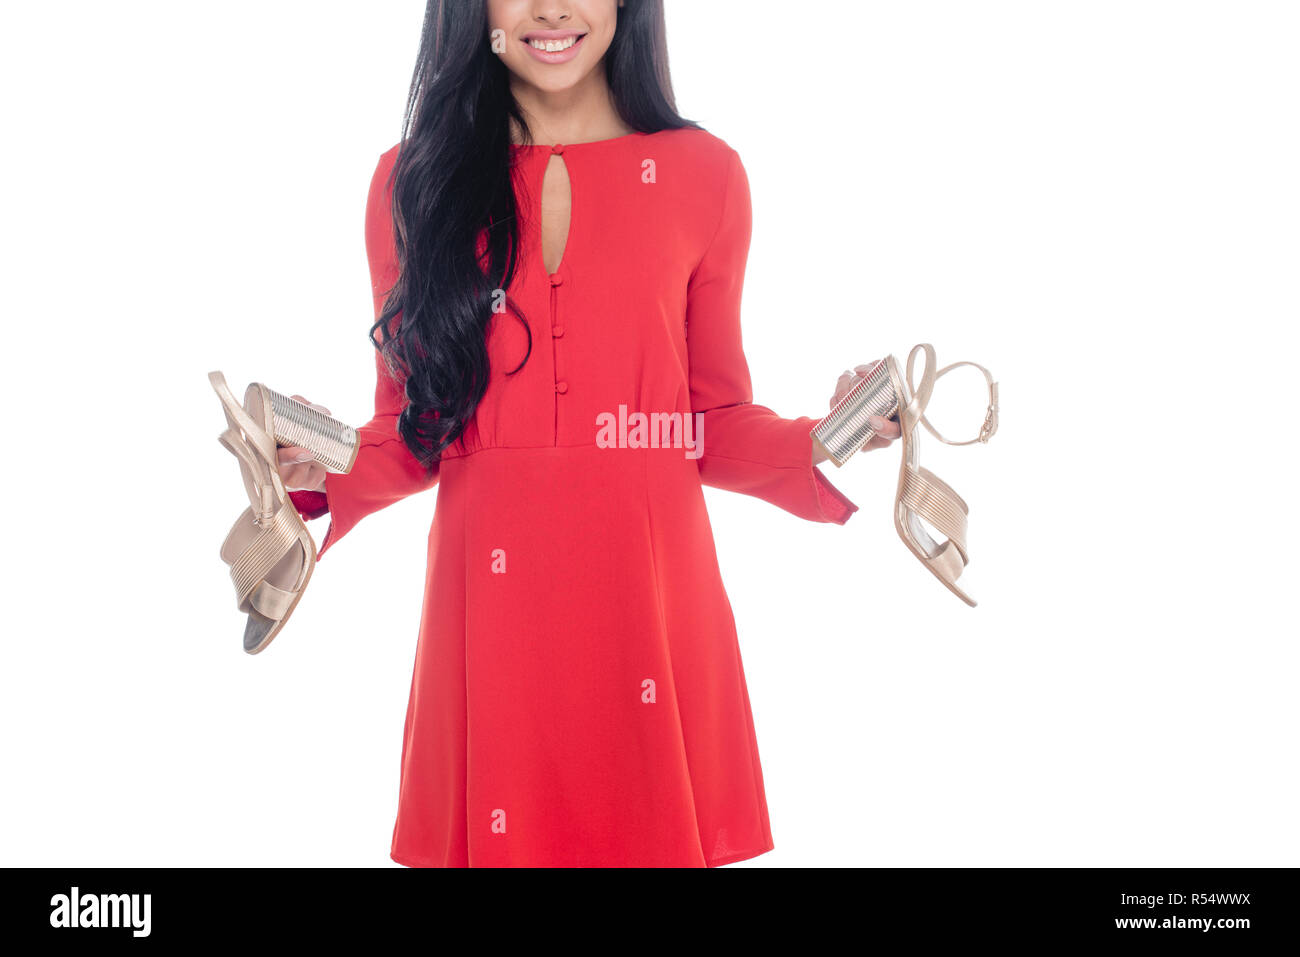 7526e638a847 partial view of african american girl in red dress holding sandals with  heels isolated on white